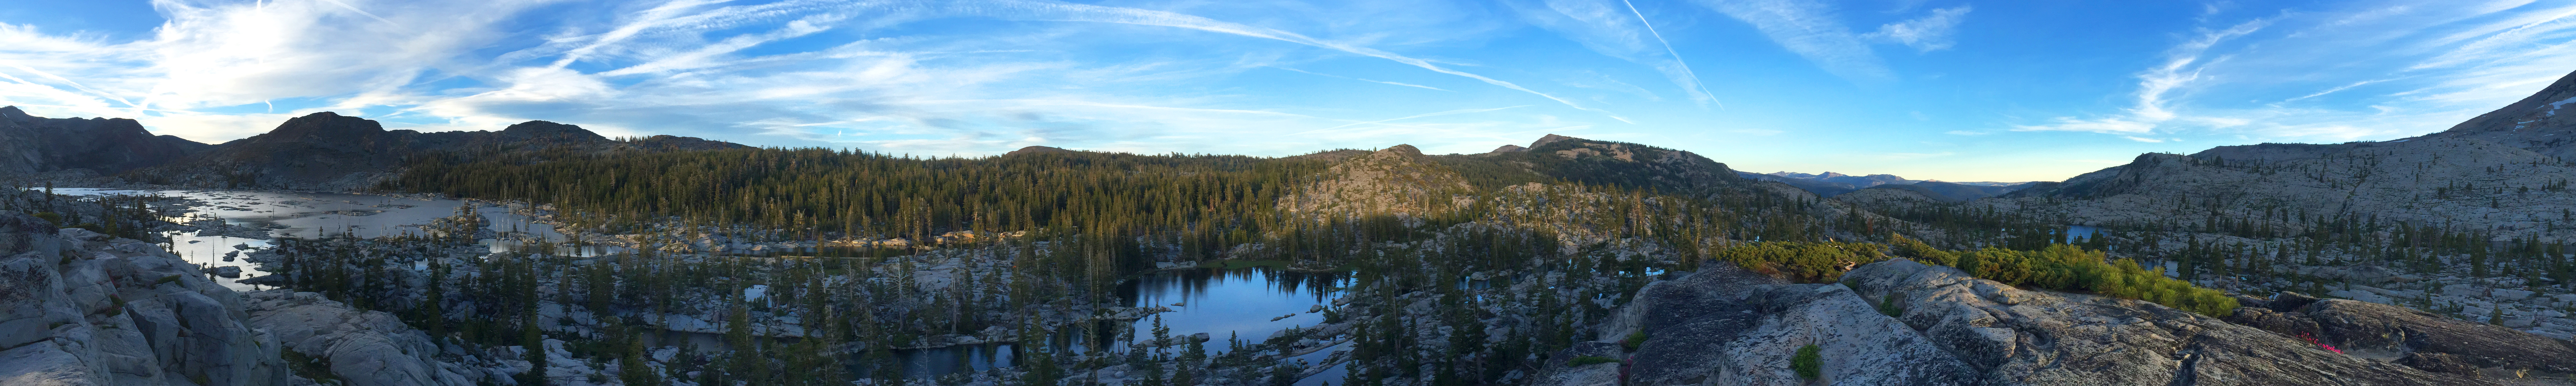 Panorama of Emigrant Wilderness